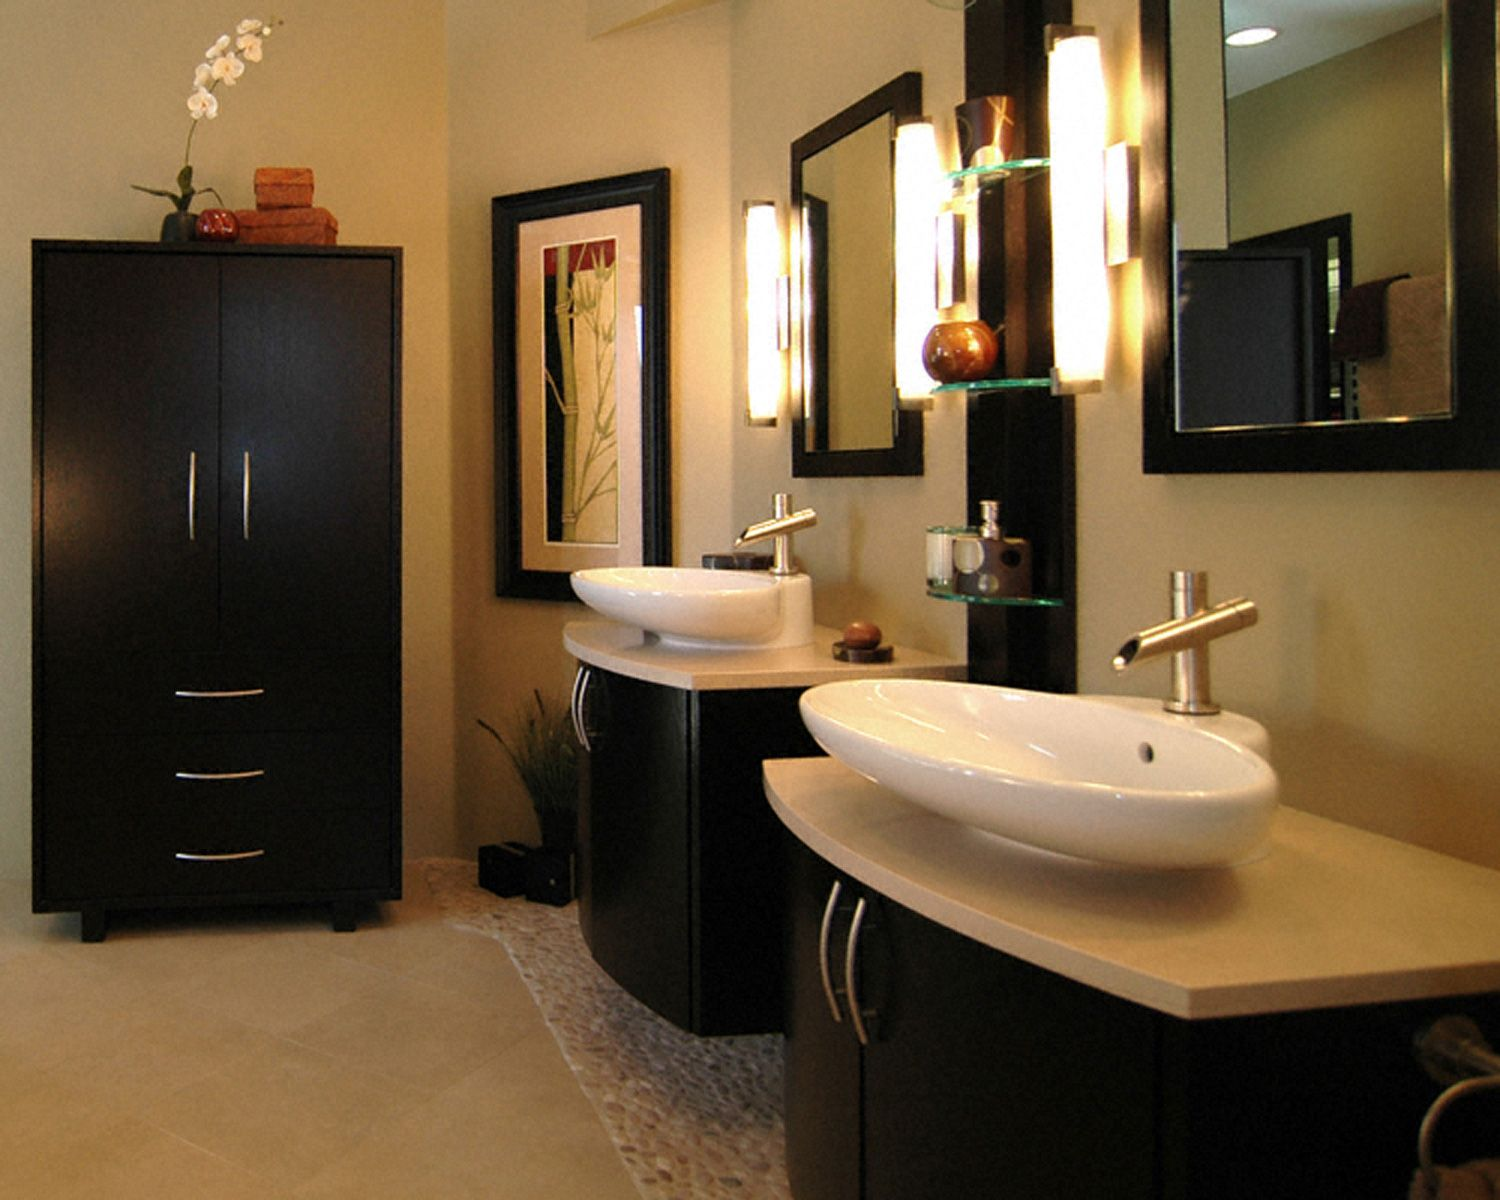 Asian bathroom vanity cabinets - 25 Best Asian Bathroom Design Ideas